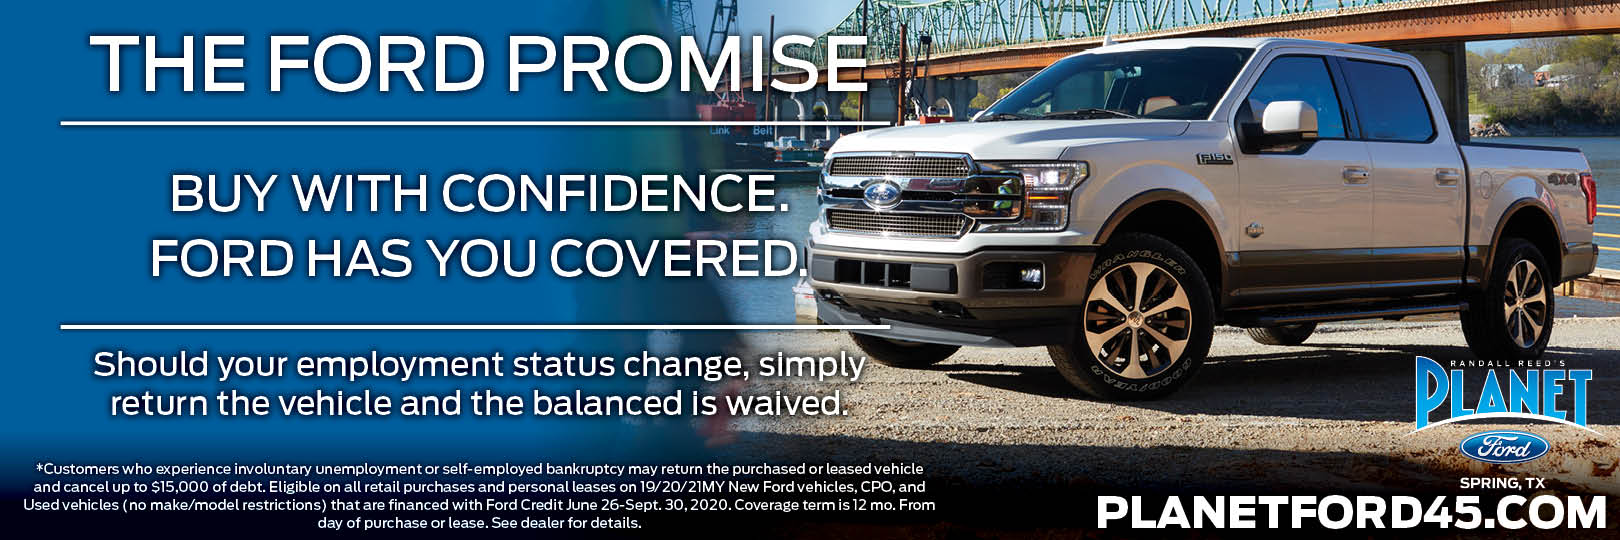 The Ford Promise